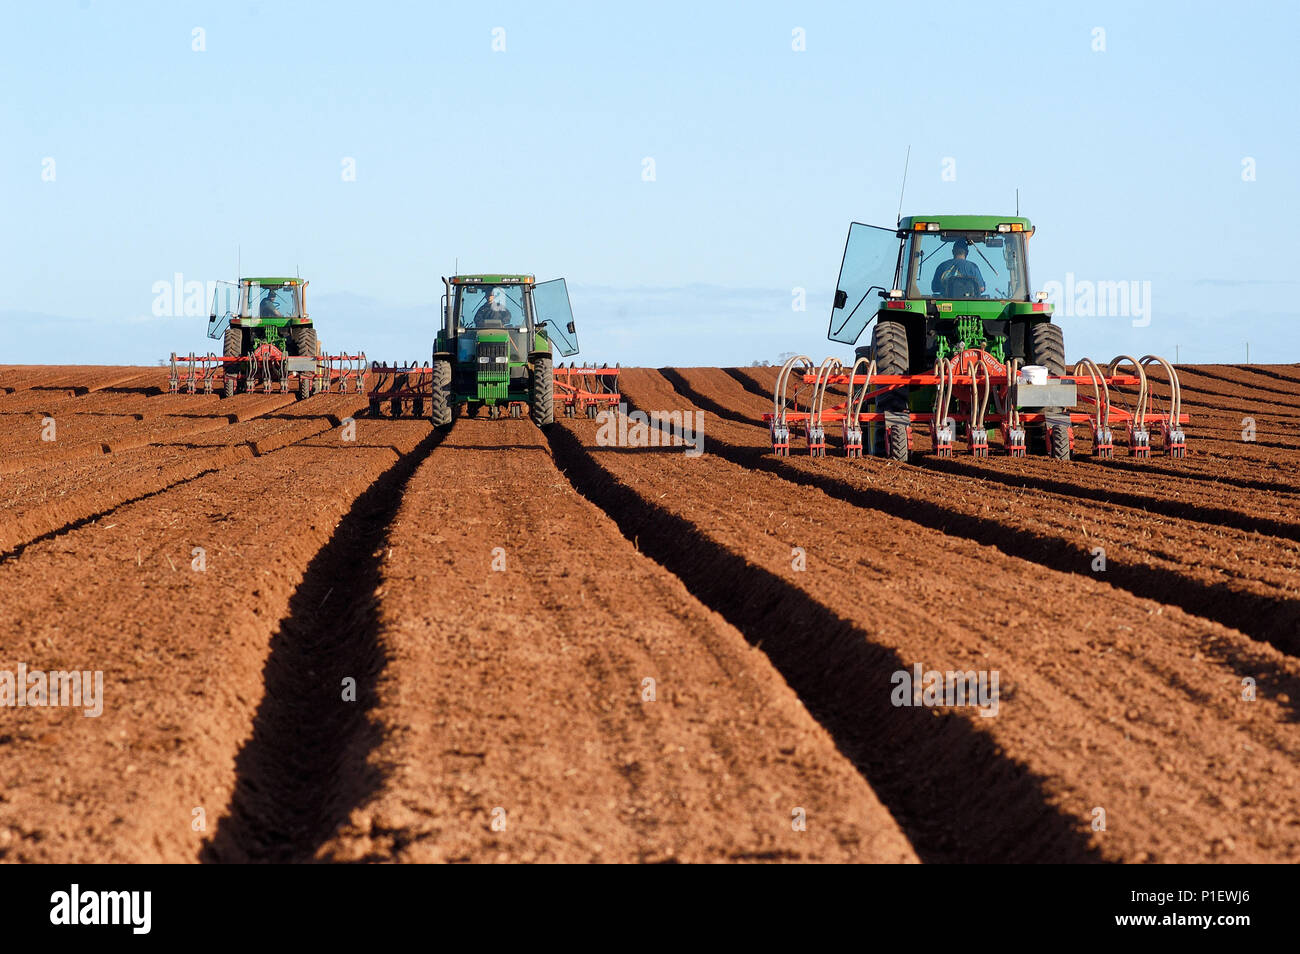 Planting carrot seed, Rocky Lamatinna and Sons property, Wemen, Victoria, Australia. - Stock Image